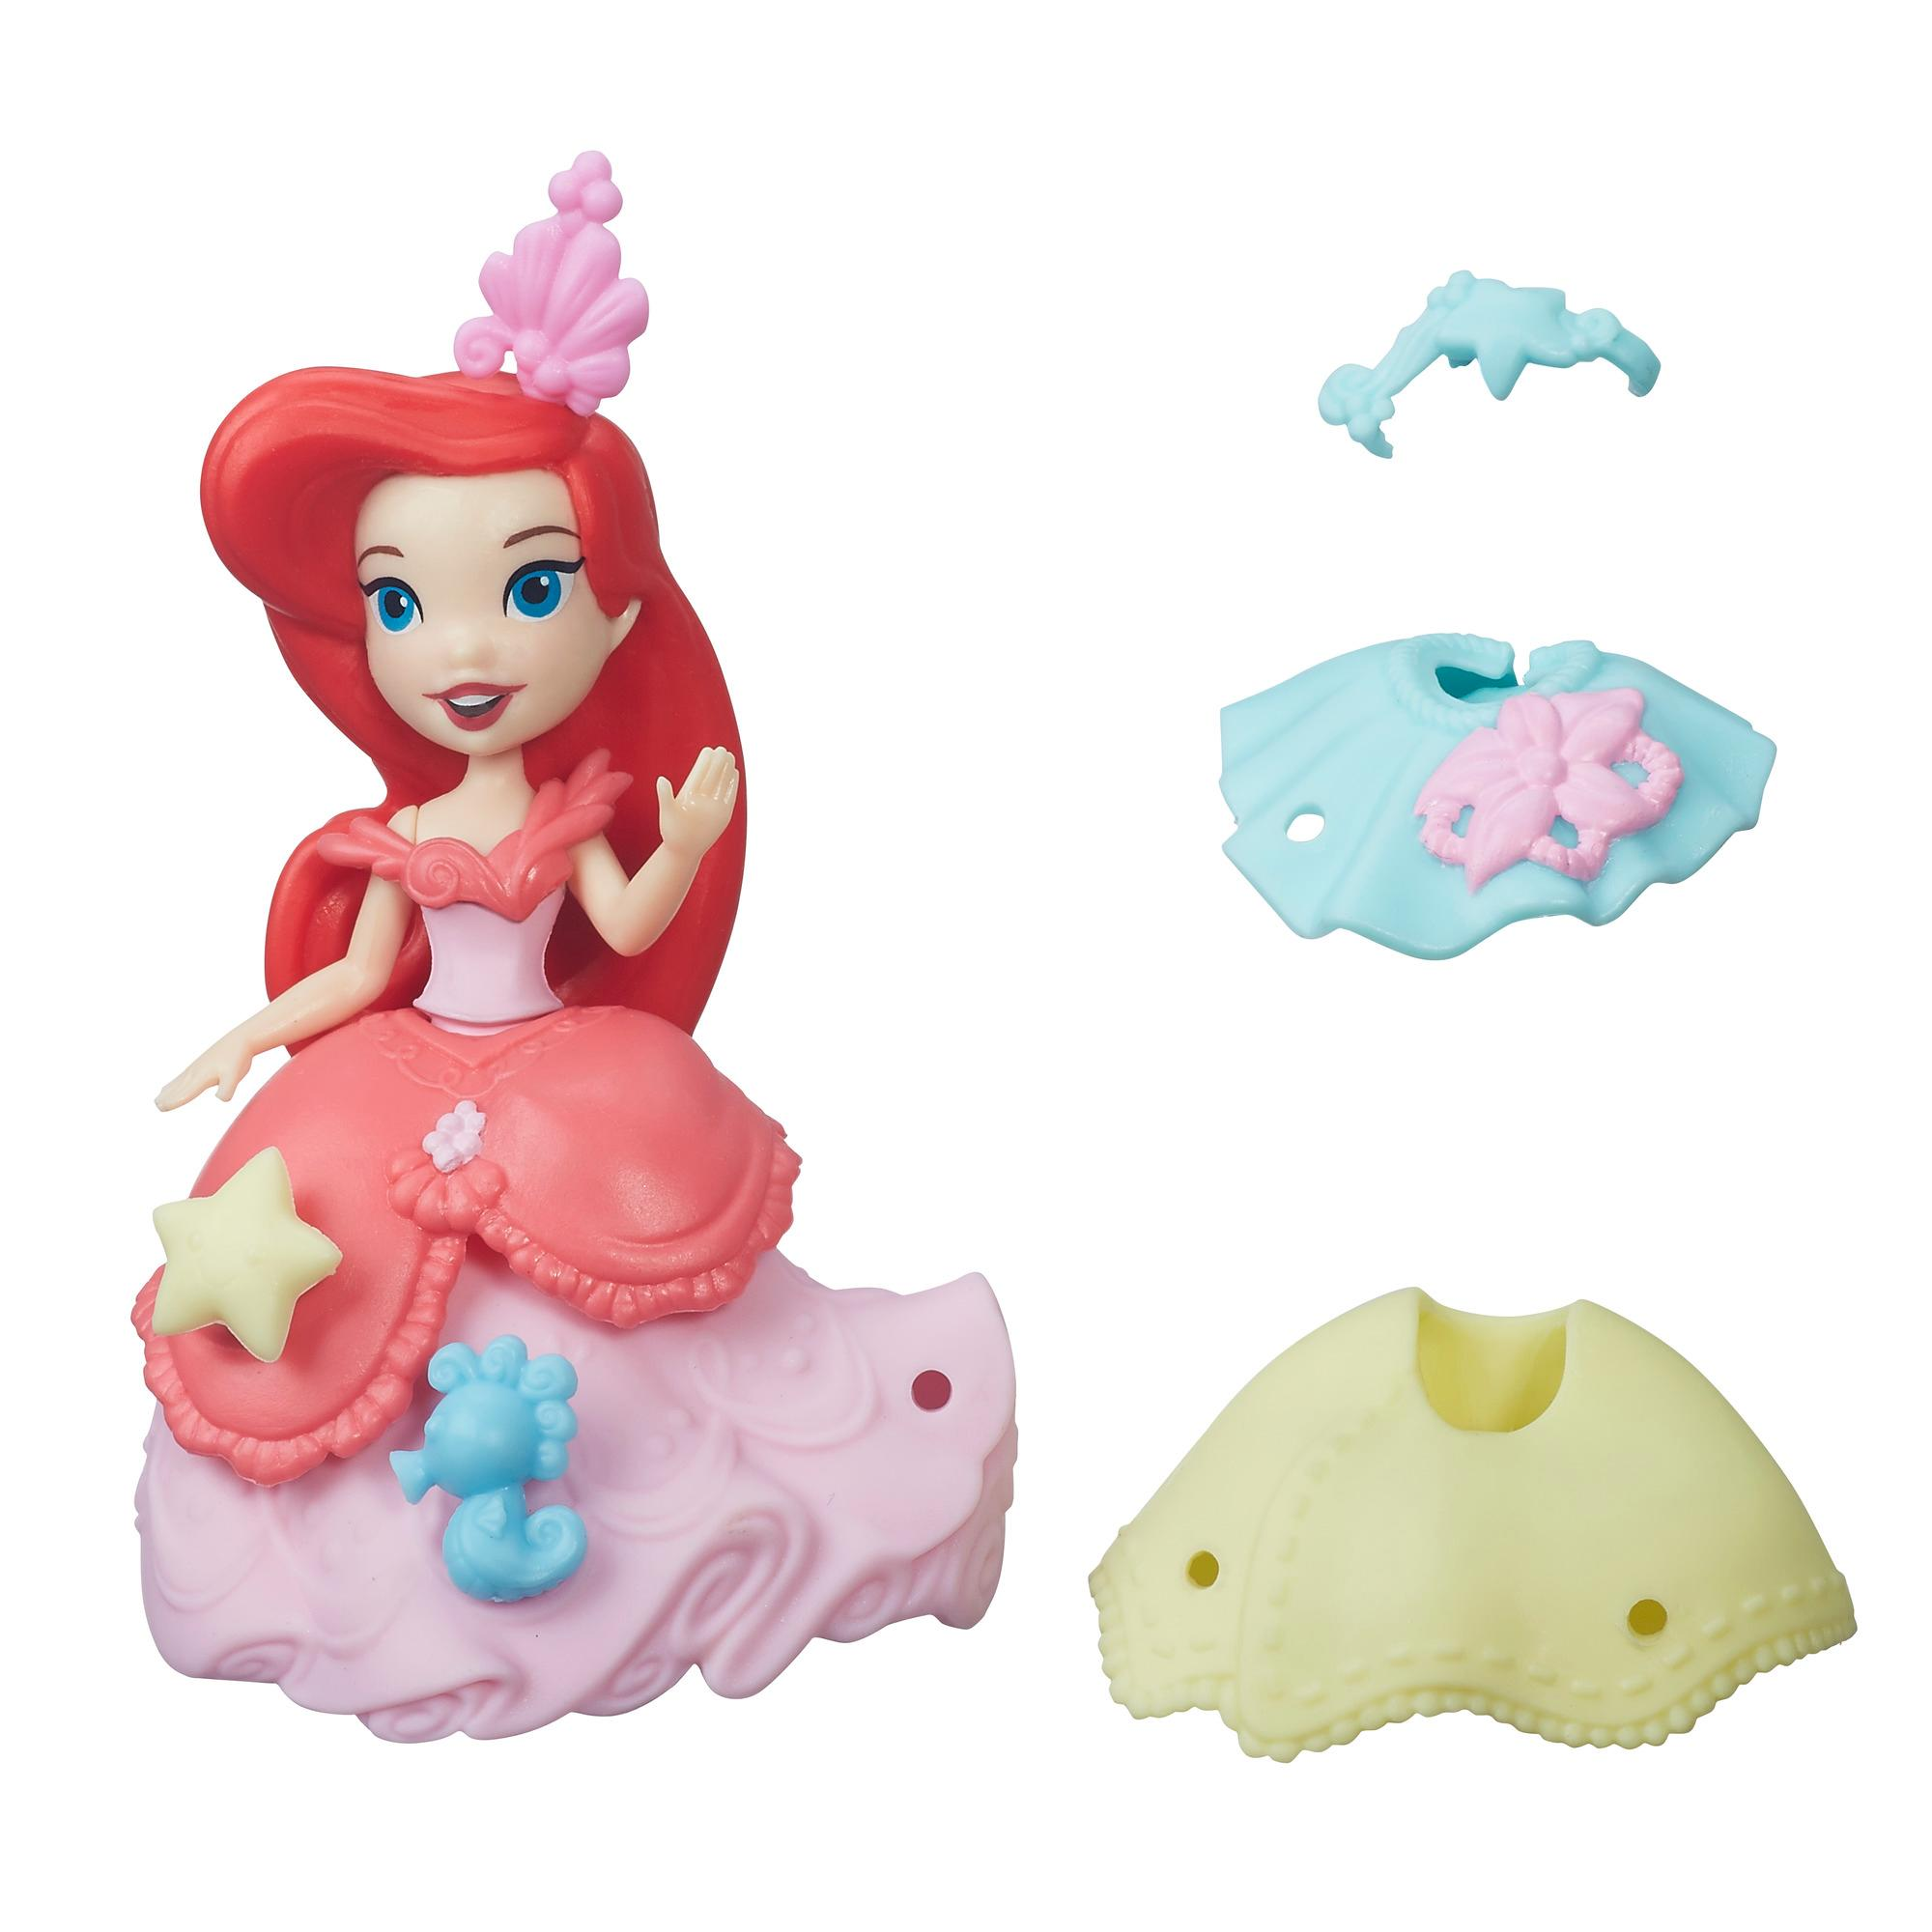 Disney Princess Pequeno Reino Figurinos fashion Ariel